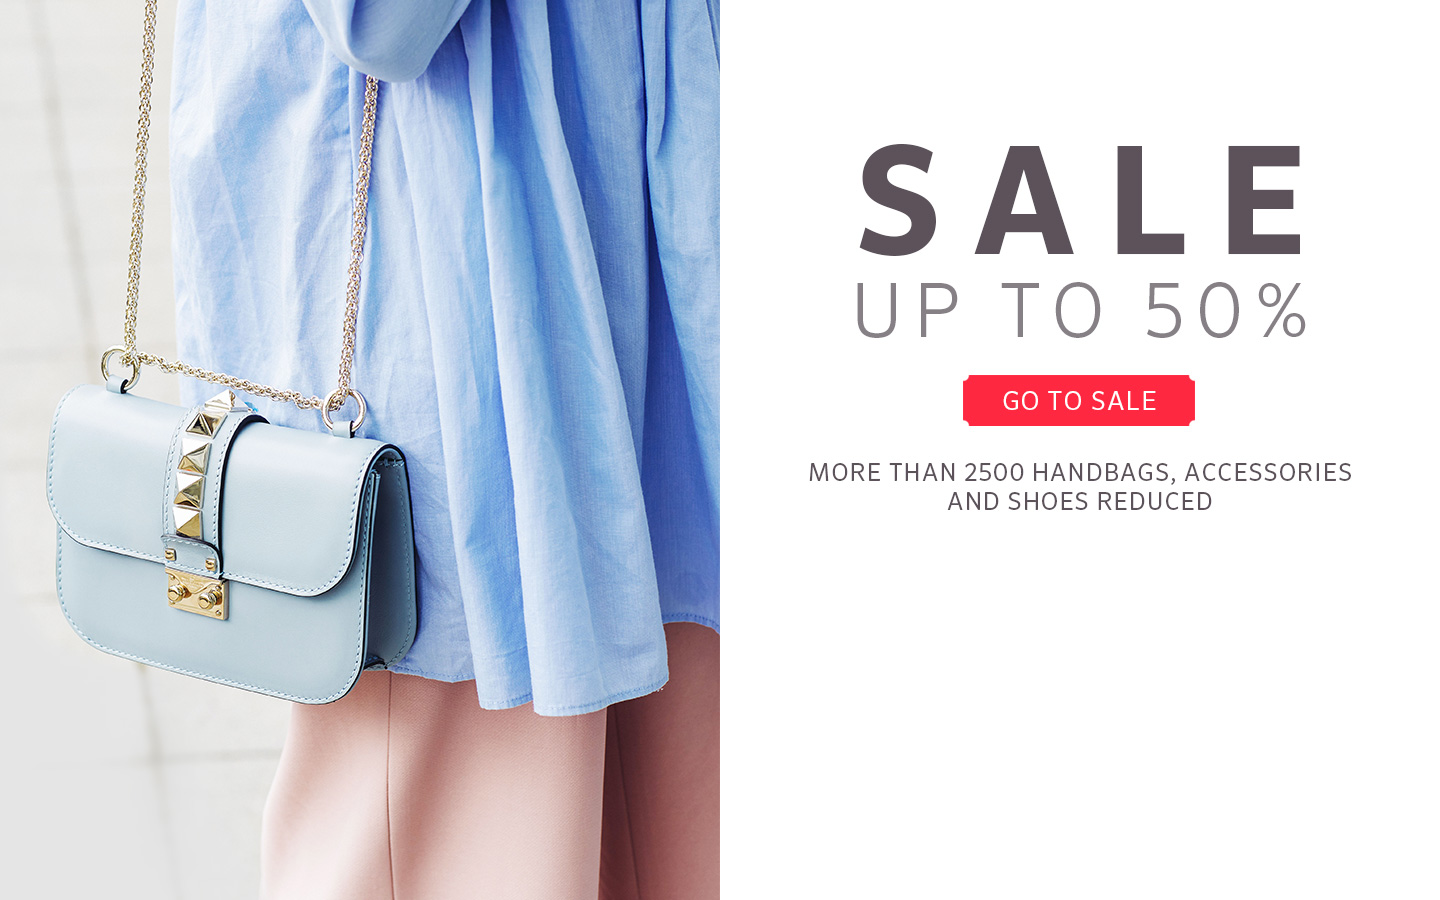 806cdde5ec Buy designer handbags and accessories online | fashionette. Sale: save up  to 50%